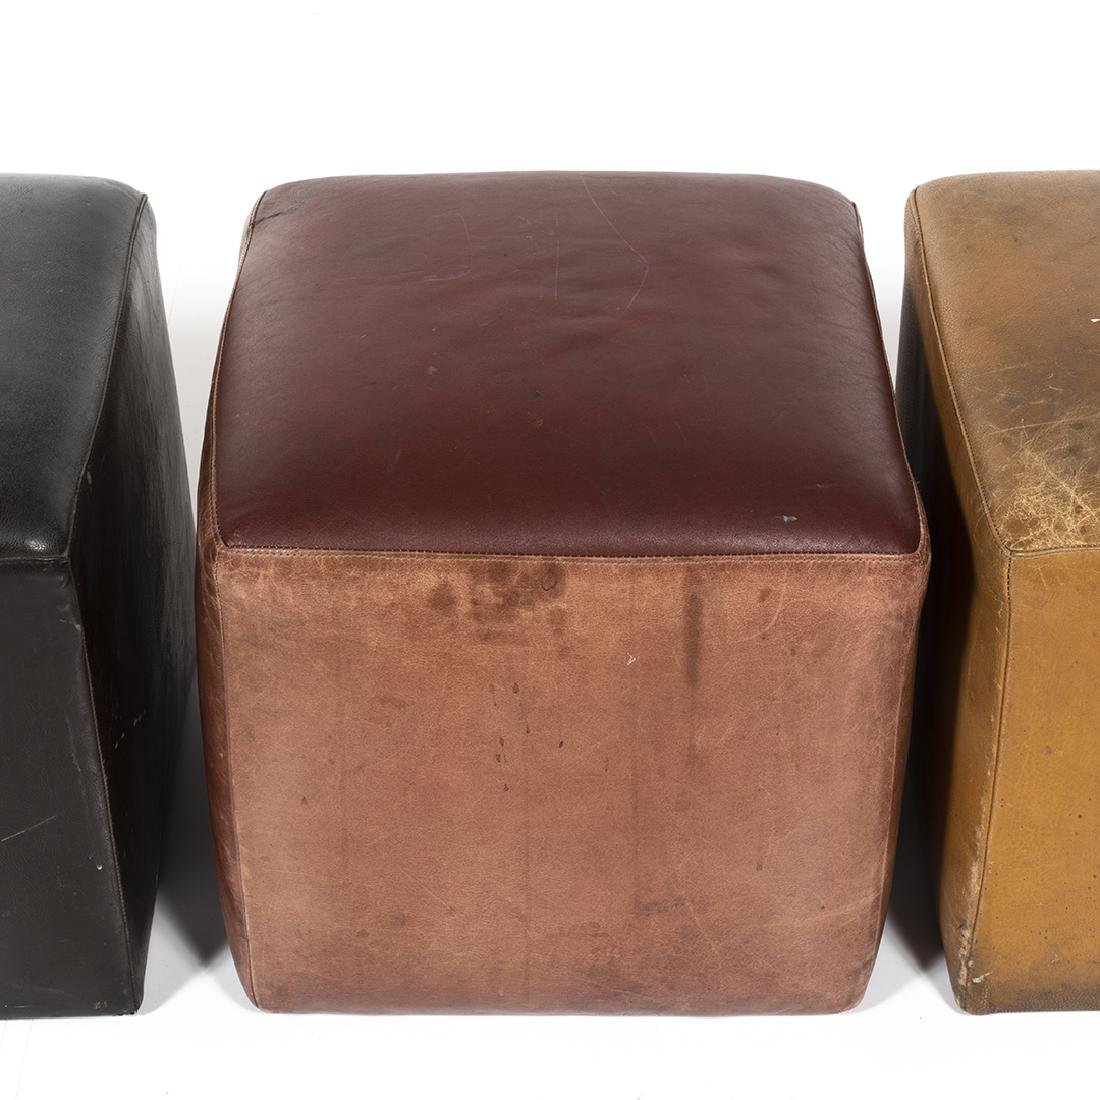 Distressed Leather Ottomans (4) - 3